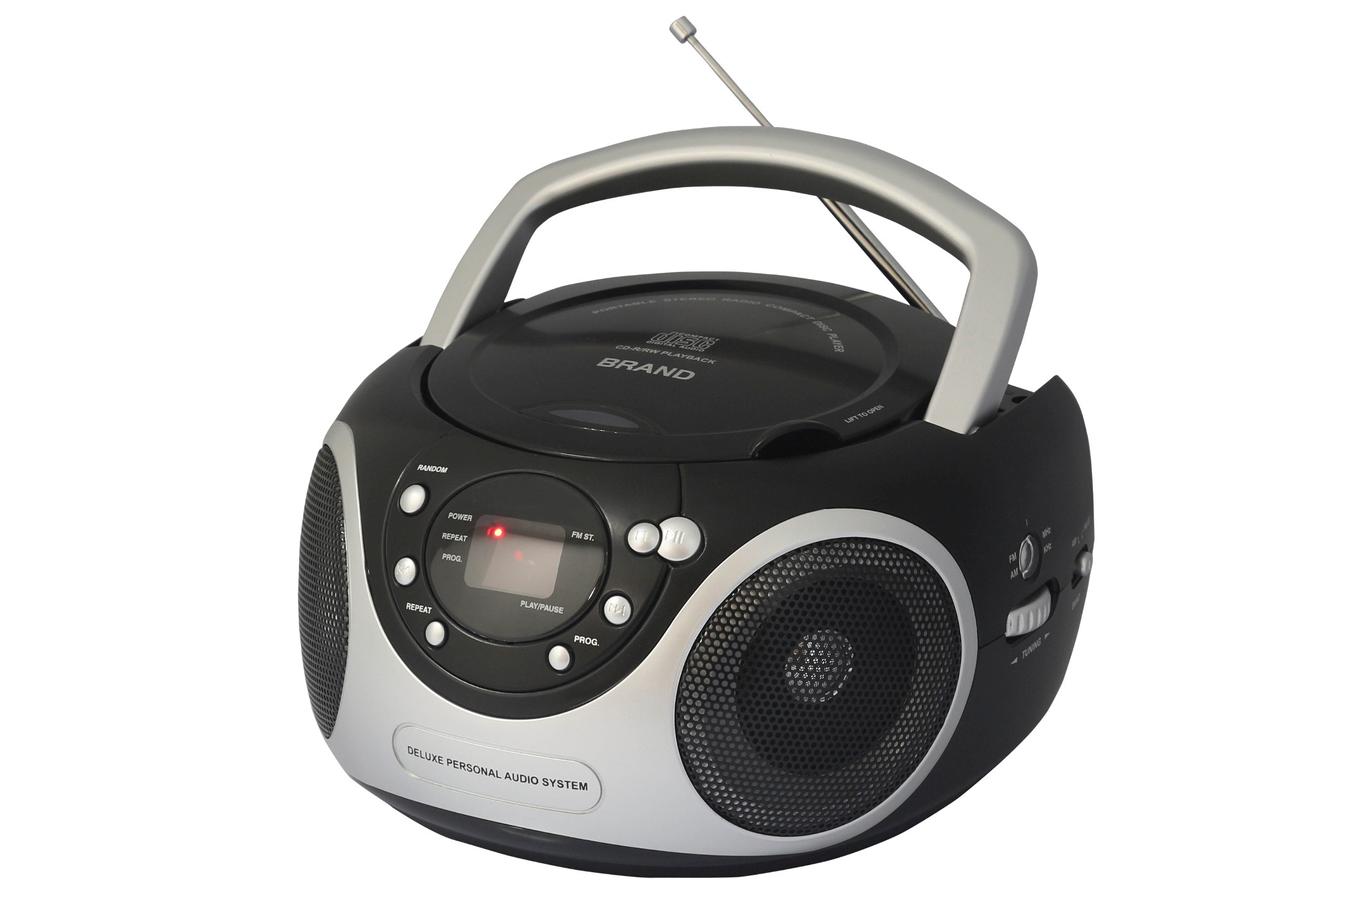 poste radio cd poste radio portable radio cd vcd cassette. Black Bedroom Furniture Sets. Home Design Ideas